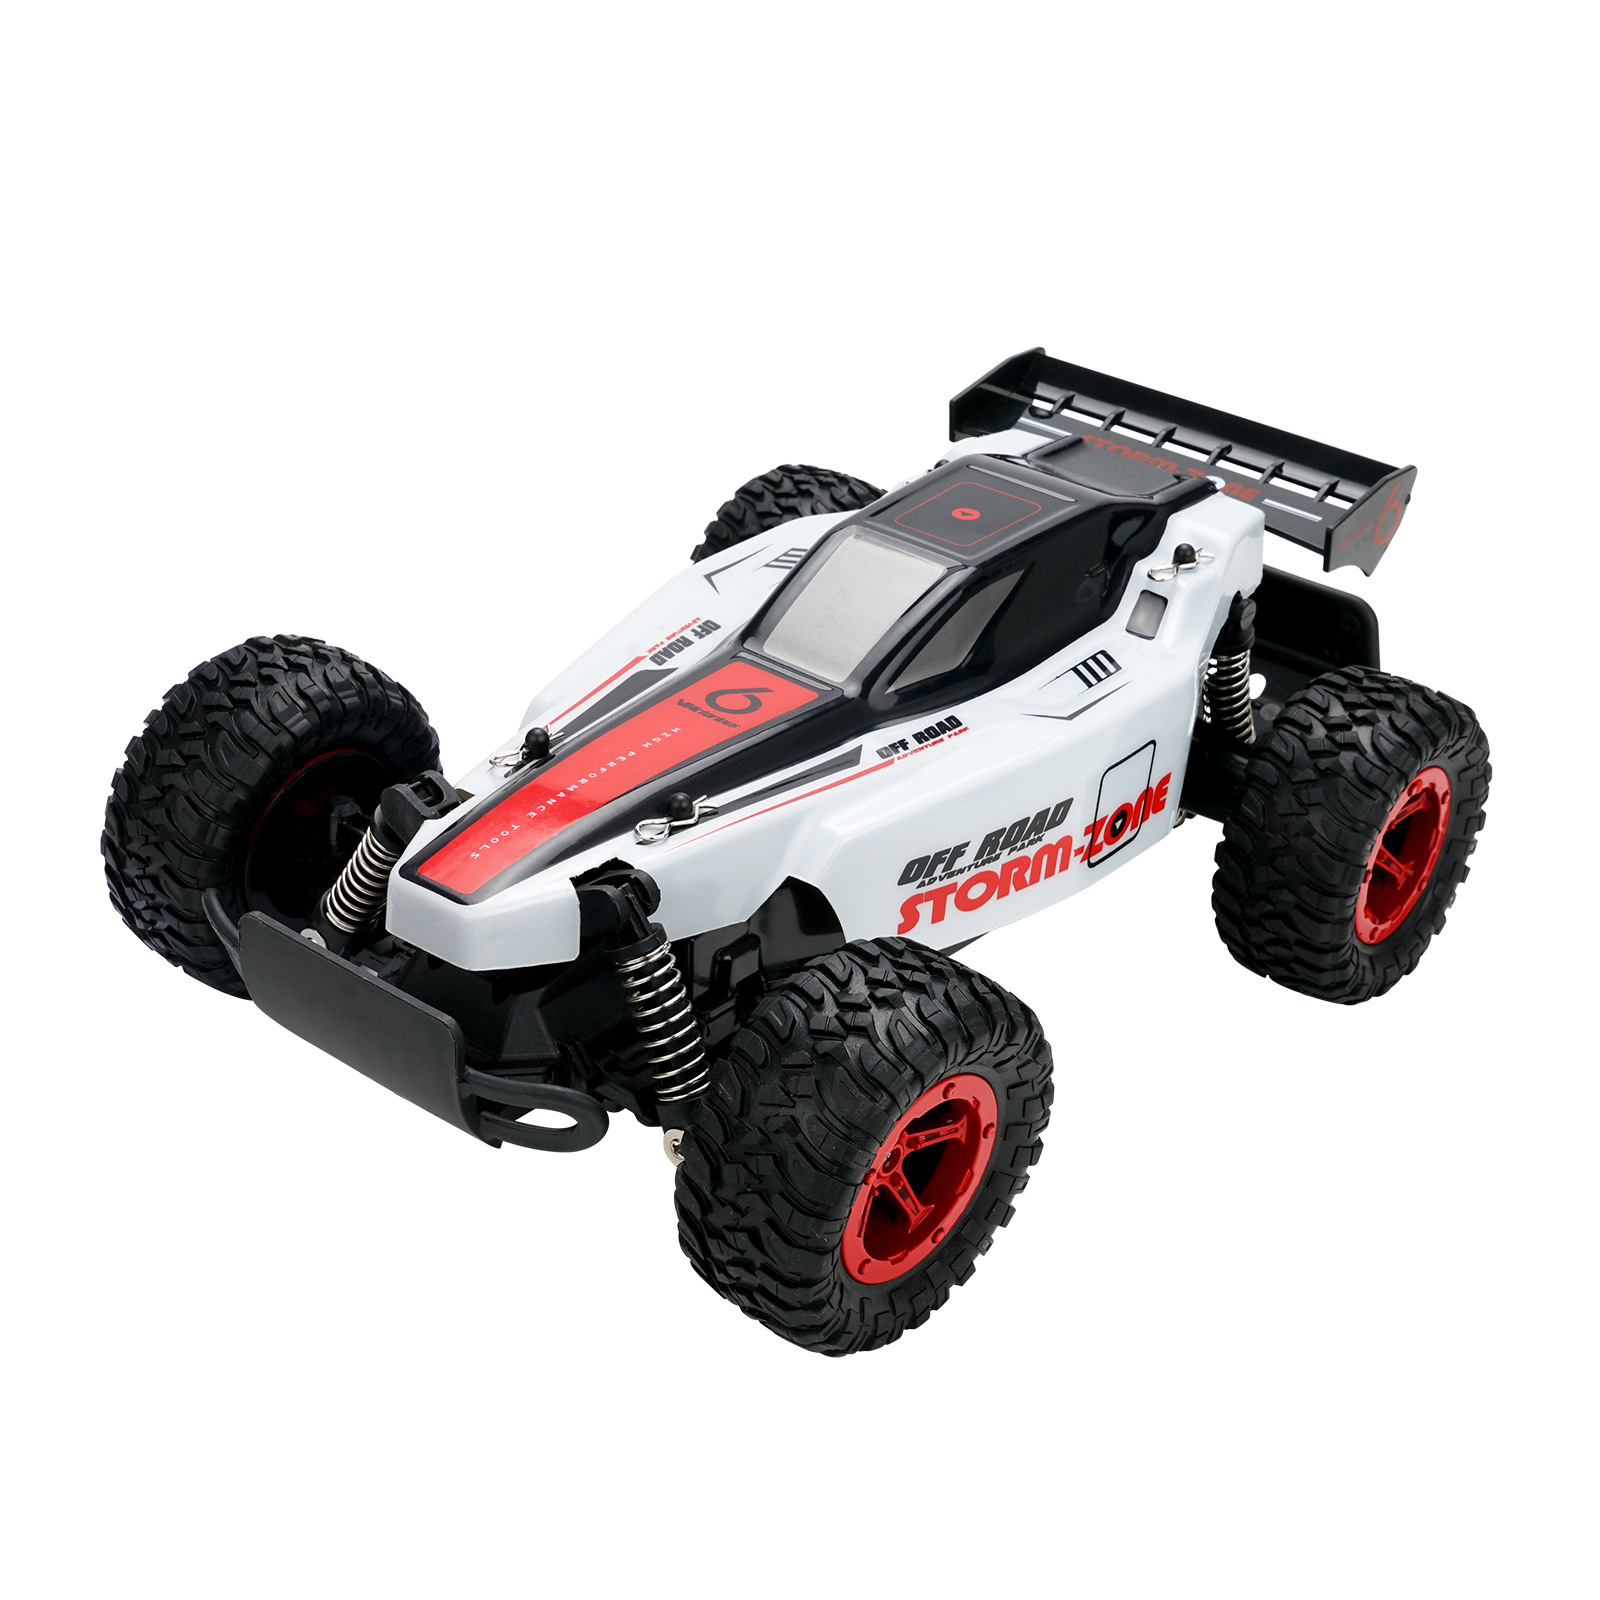 1:14 2.4G RC Racing Car 4WD Remote Control High Speed Electric Racing Climbing RC Stunt Car Drift Vehicle Model Toy For Boy red